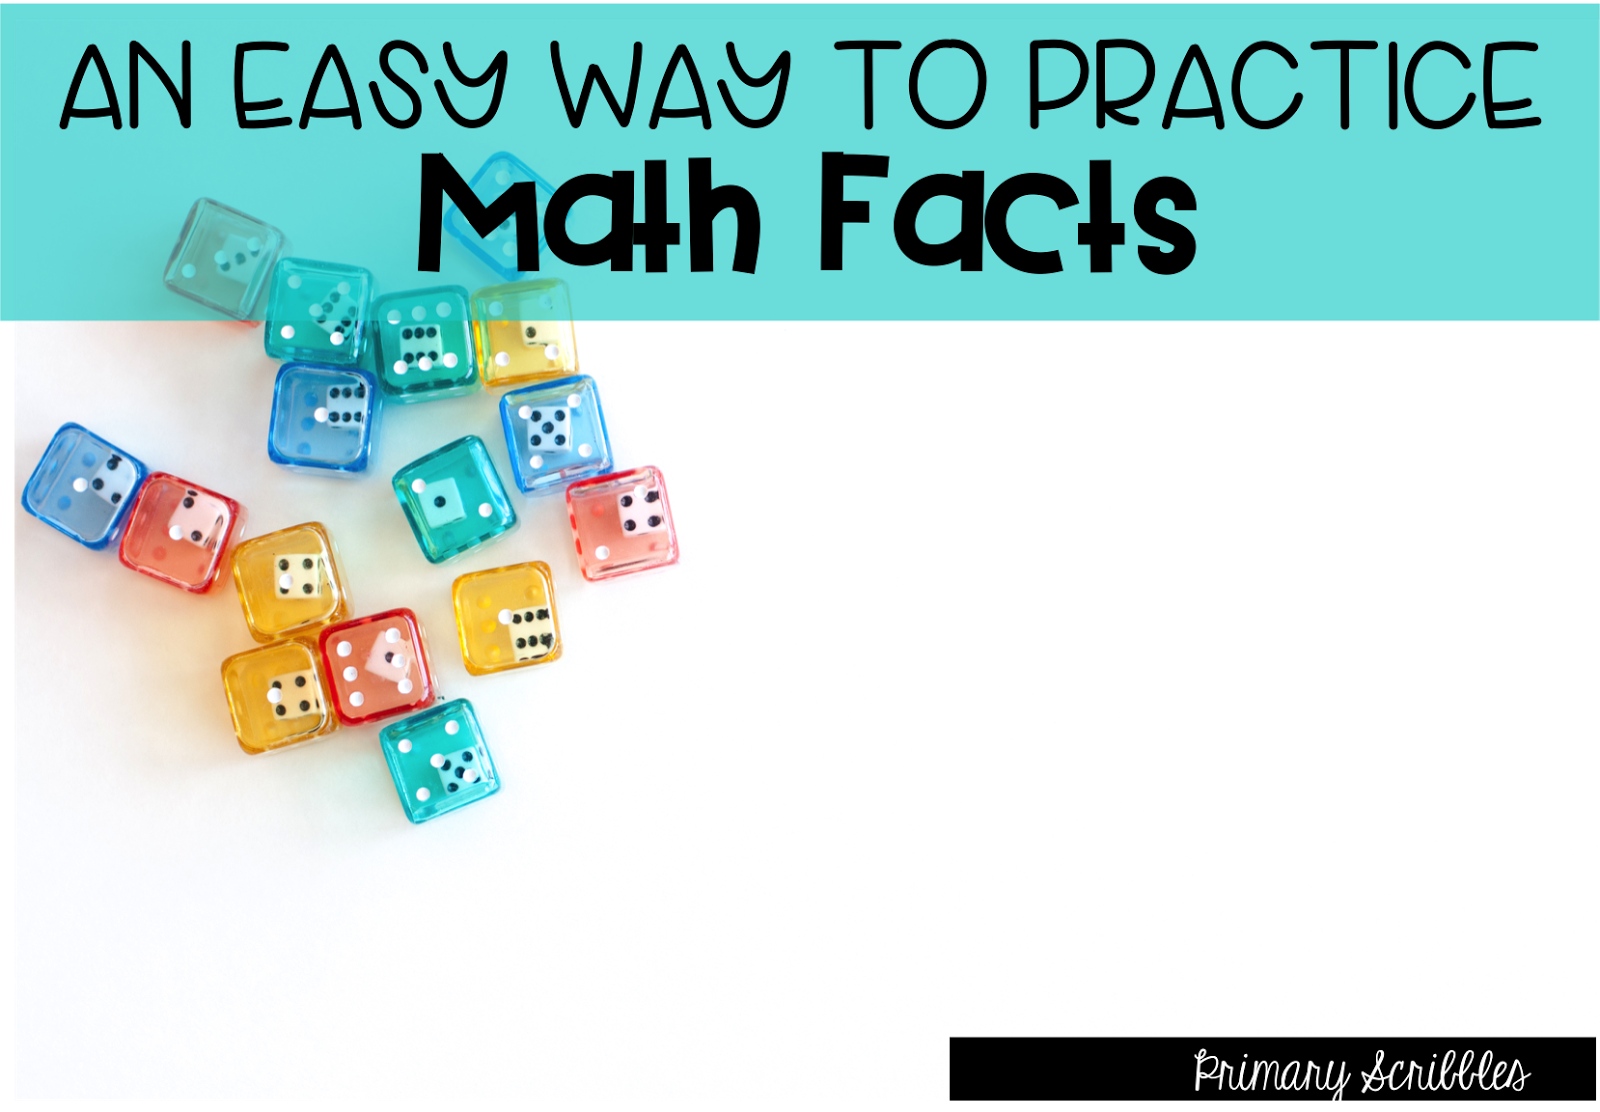 Math Facts Made Easy - Primary Scribbles